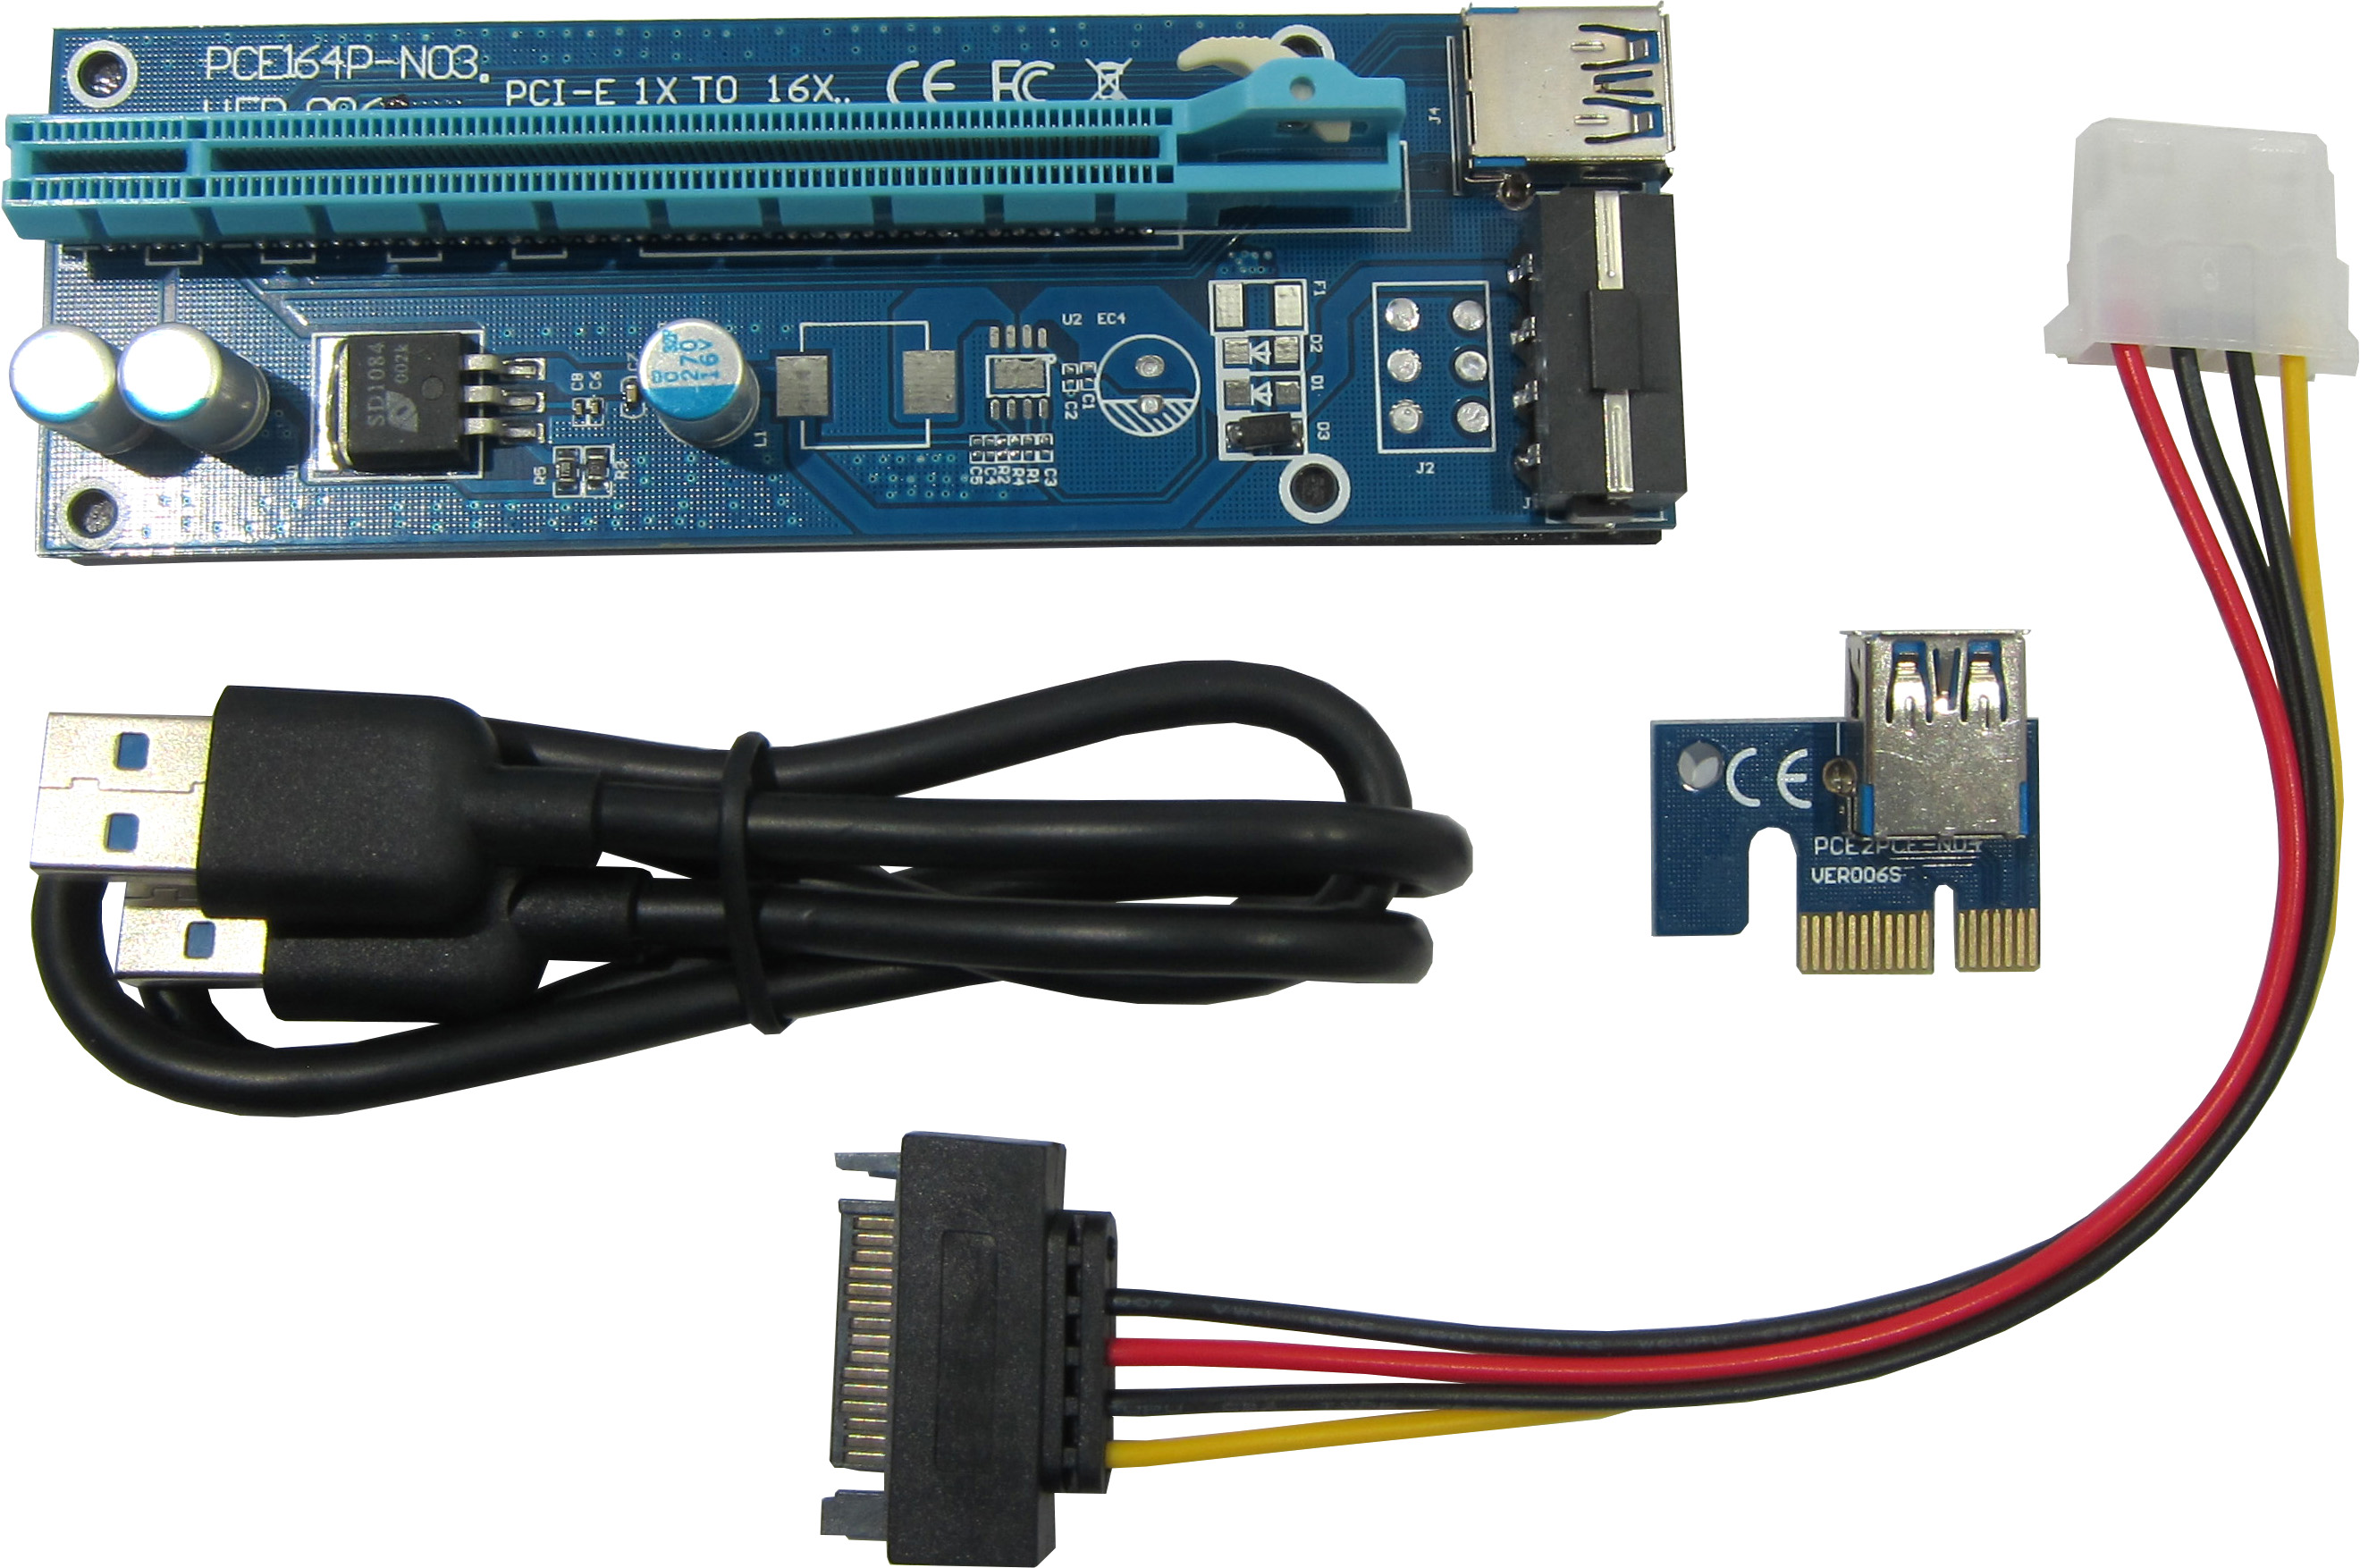 Купить Райзеры, Адаптер-райзер Dynamode PCI-E x1 to 16x, 60 см USB 3.0 Cable SATA to 4Pin IDE Molex Power ver.006 (RX-riser-006)